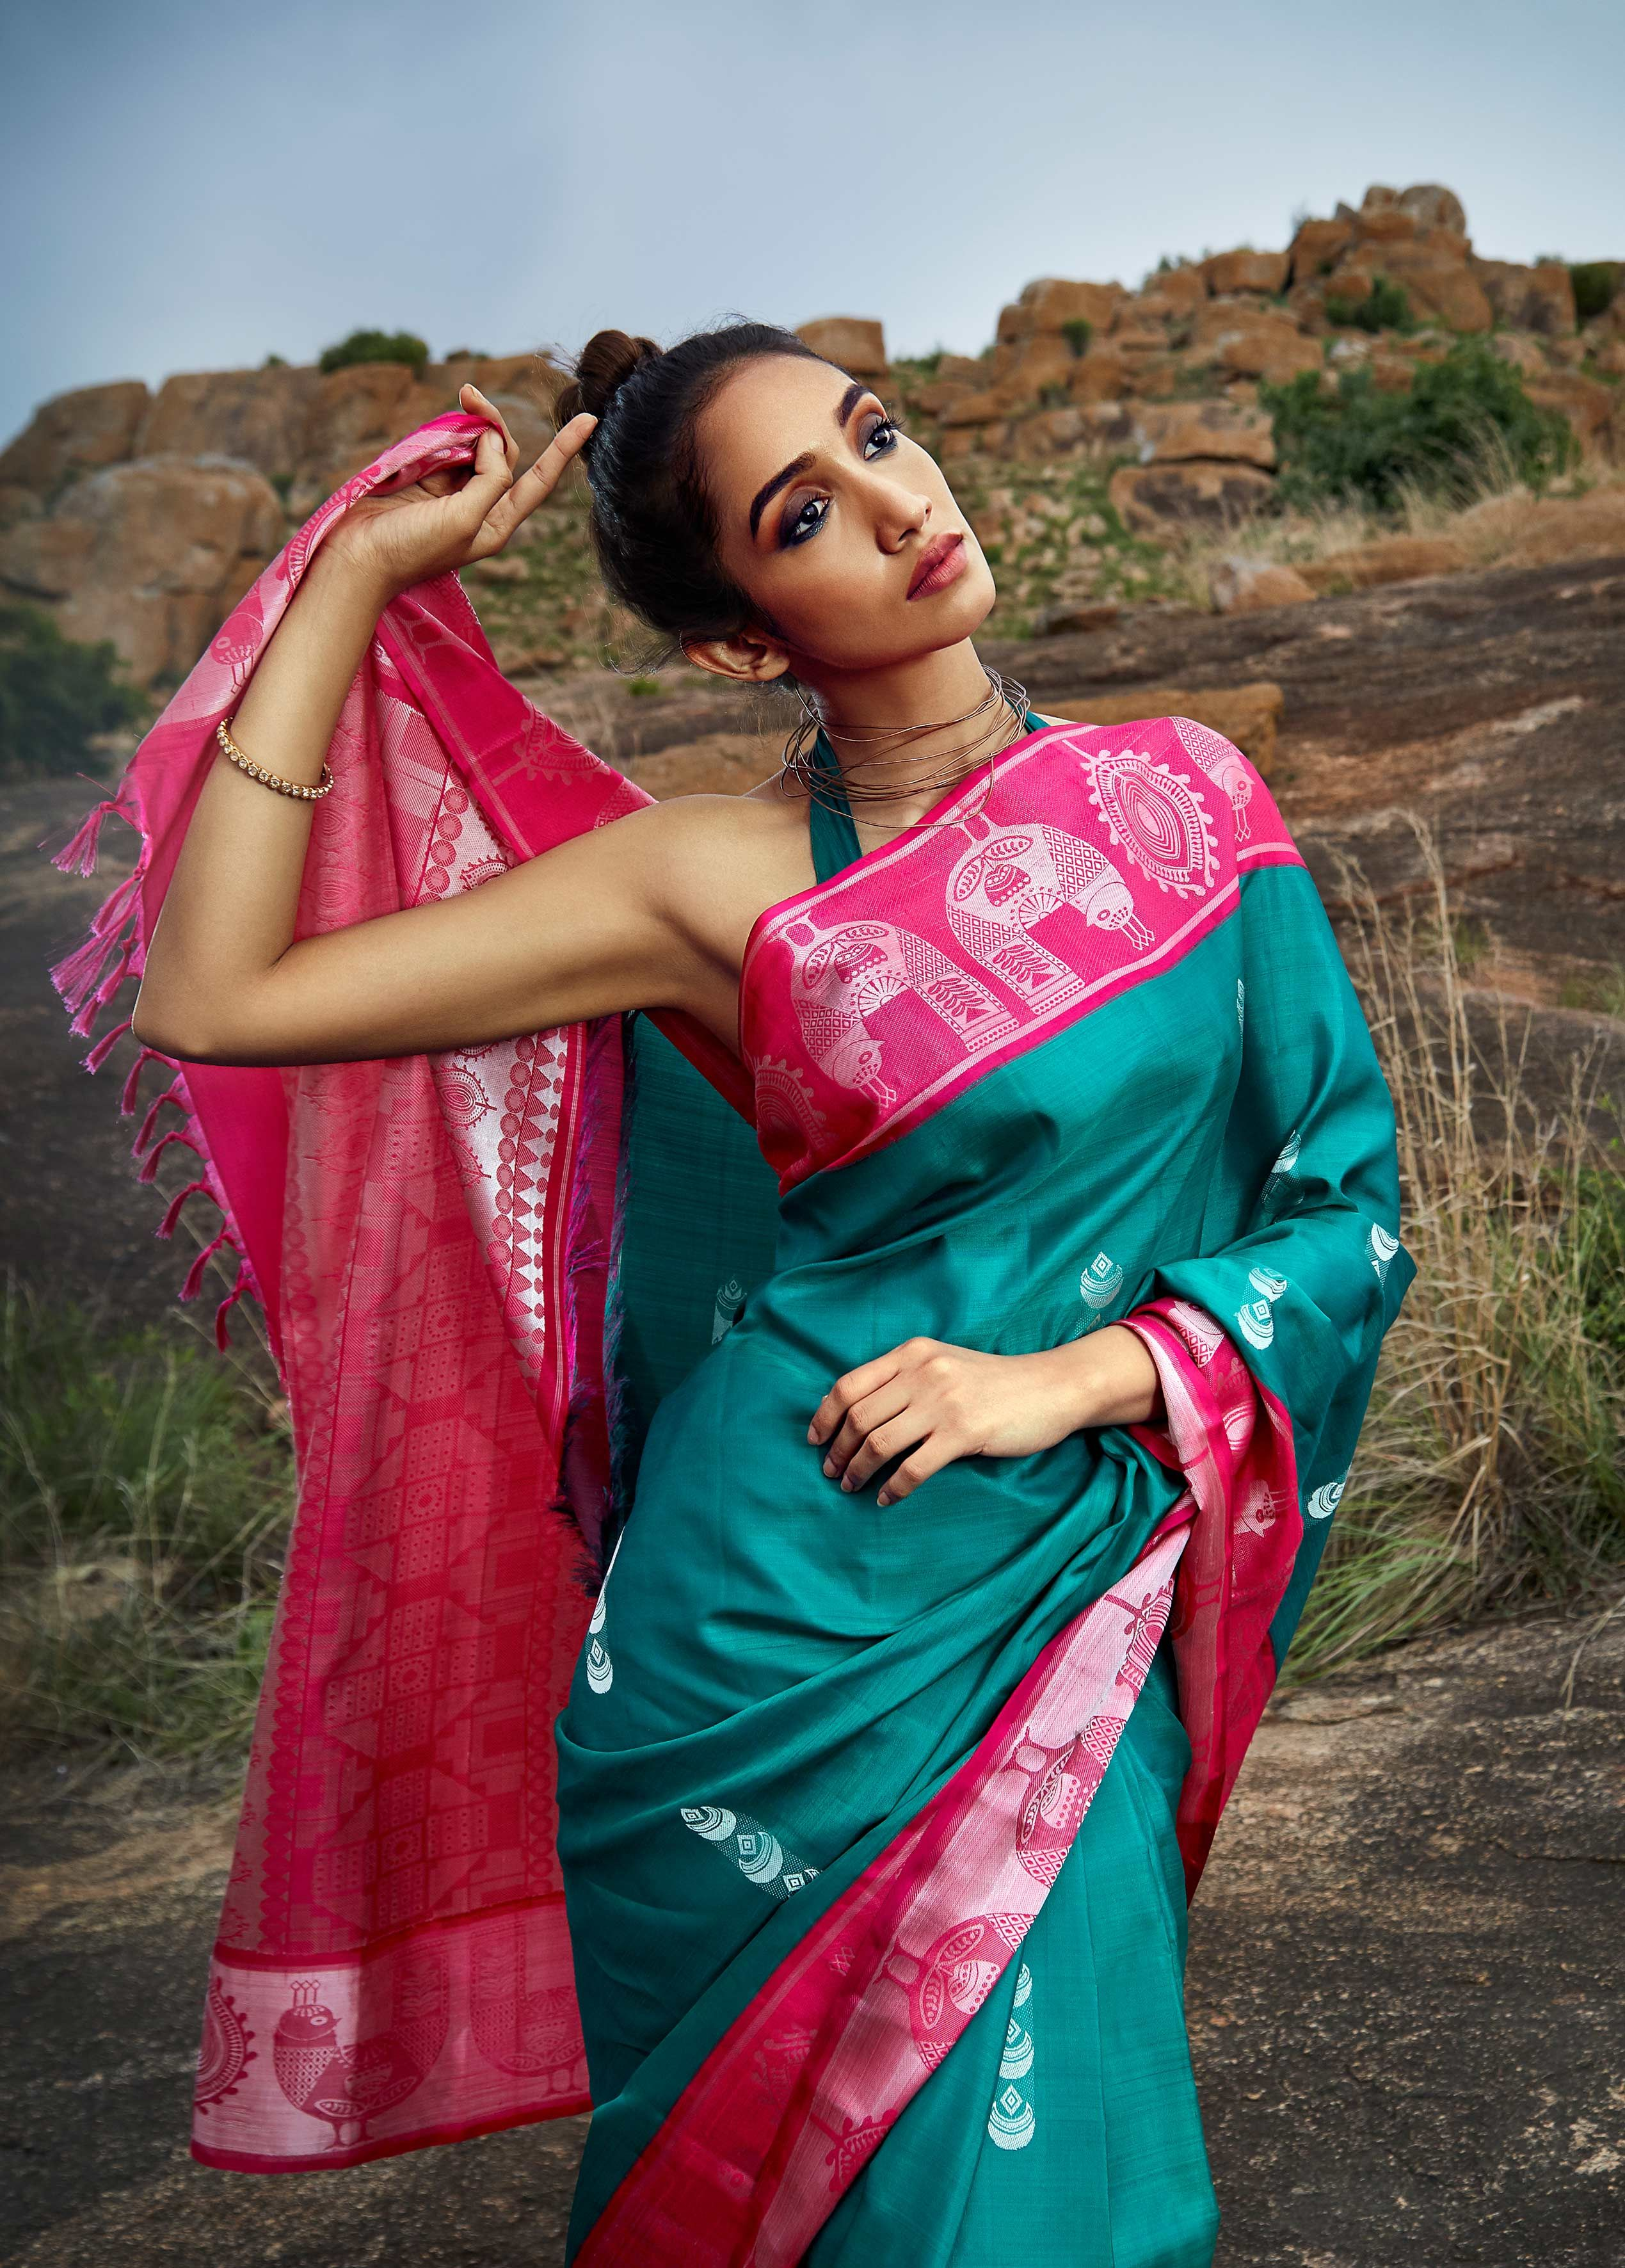 be4979c65d Folklore - Glorious Kanchivarams Inspired From Ancient Indian Design  Aesthetics • Keep Me Stylish